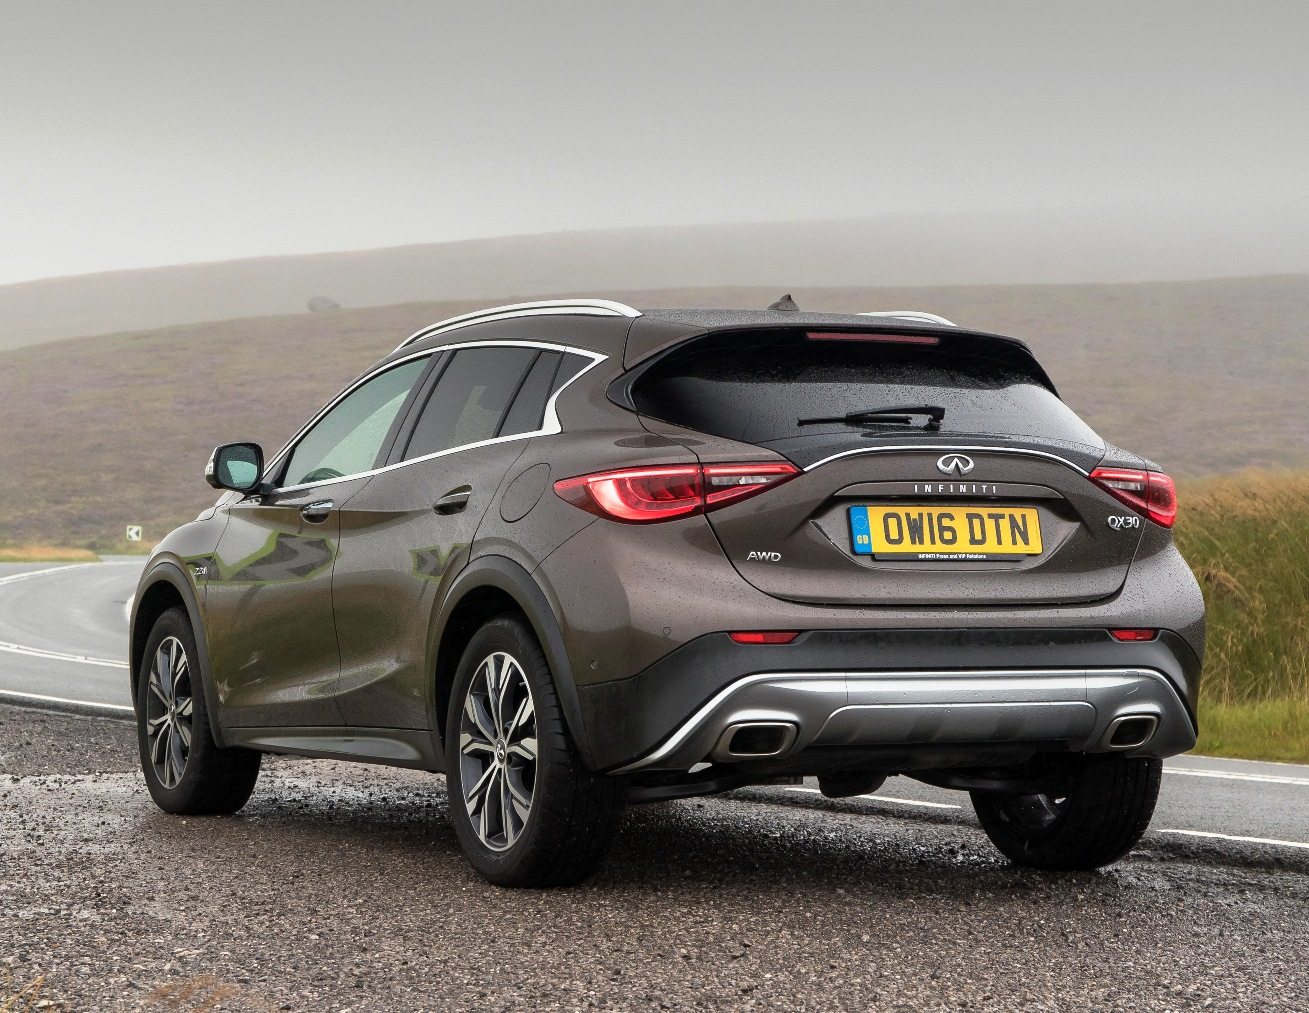 infiniti-qx30-rear-side-view